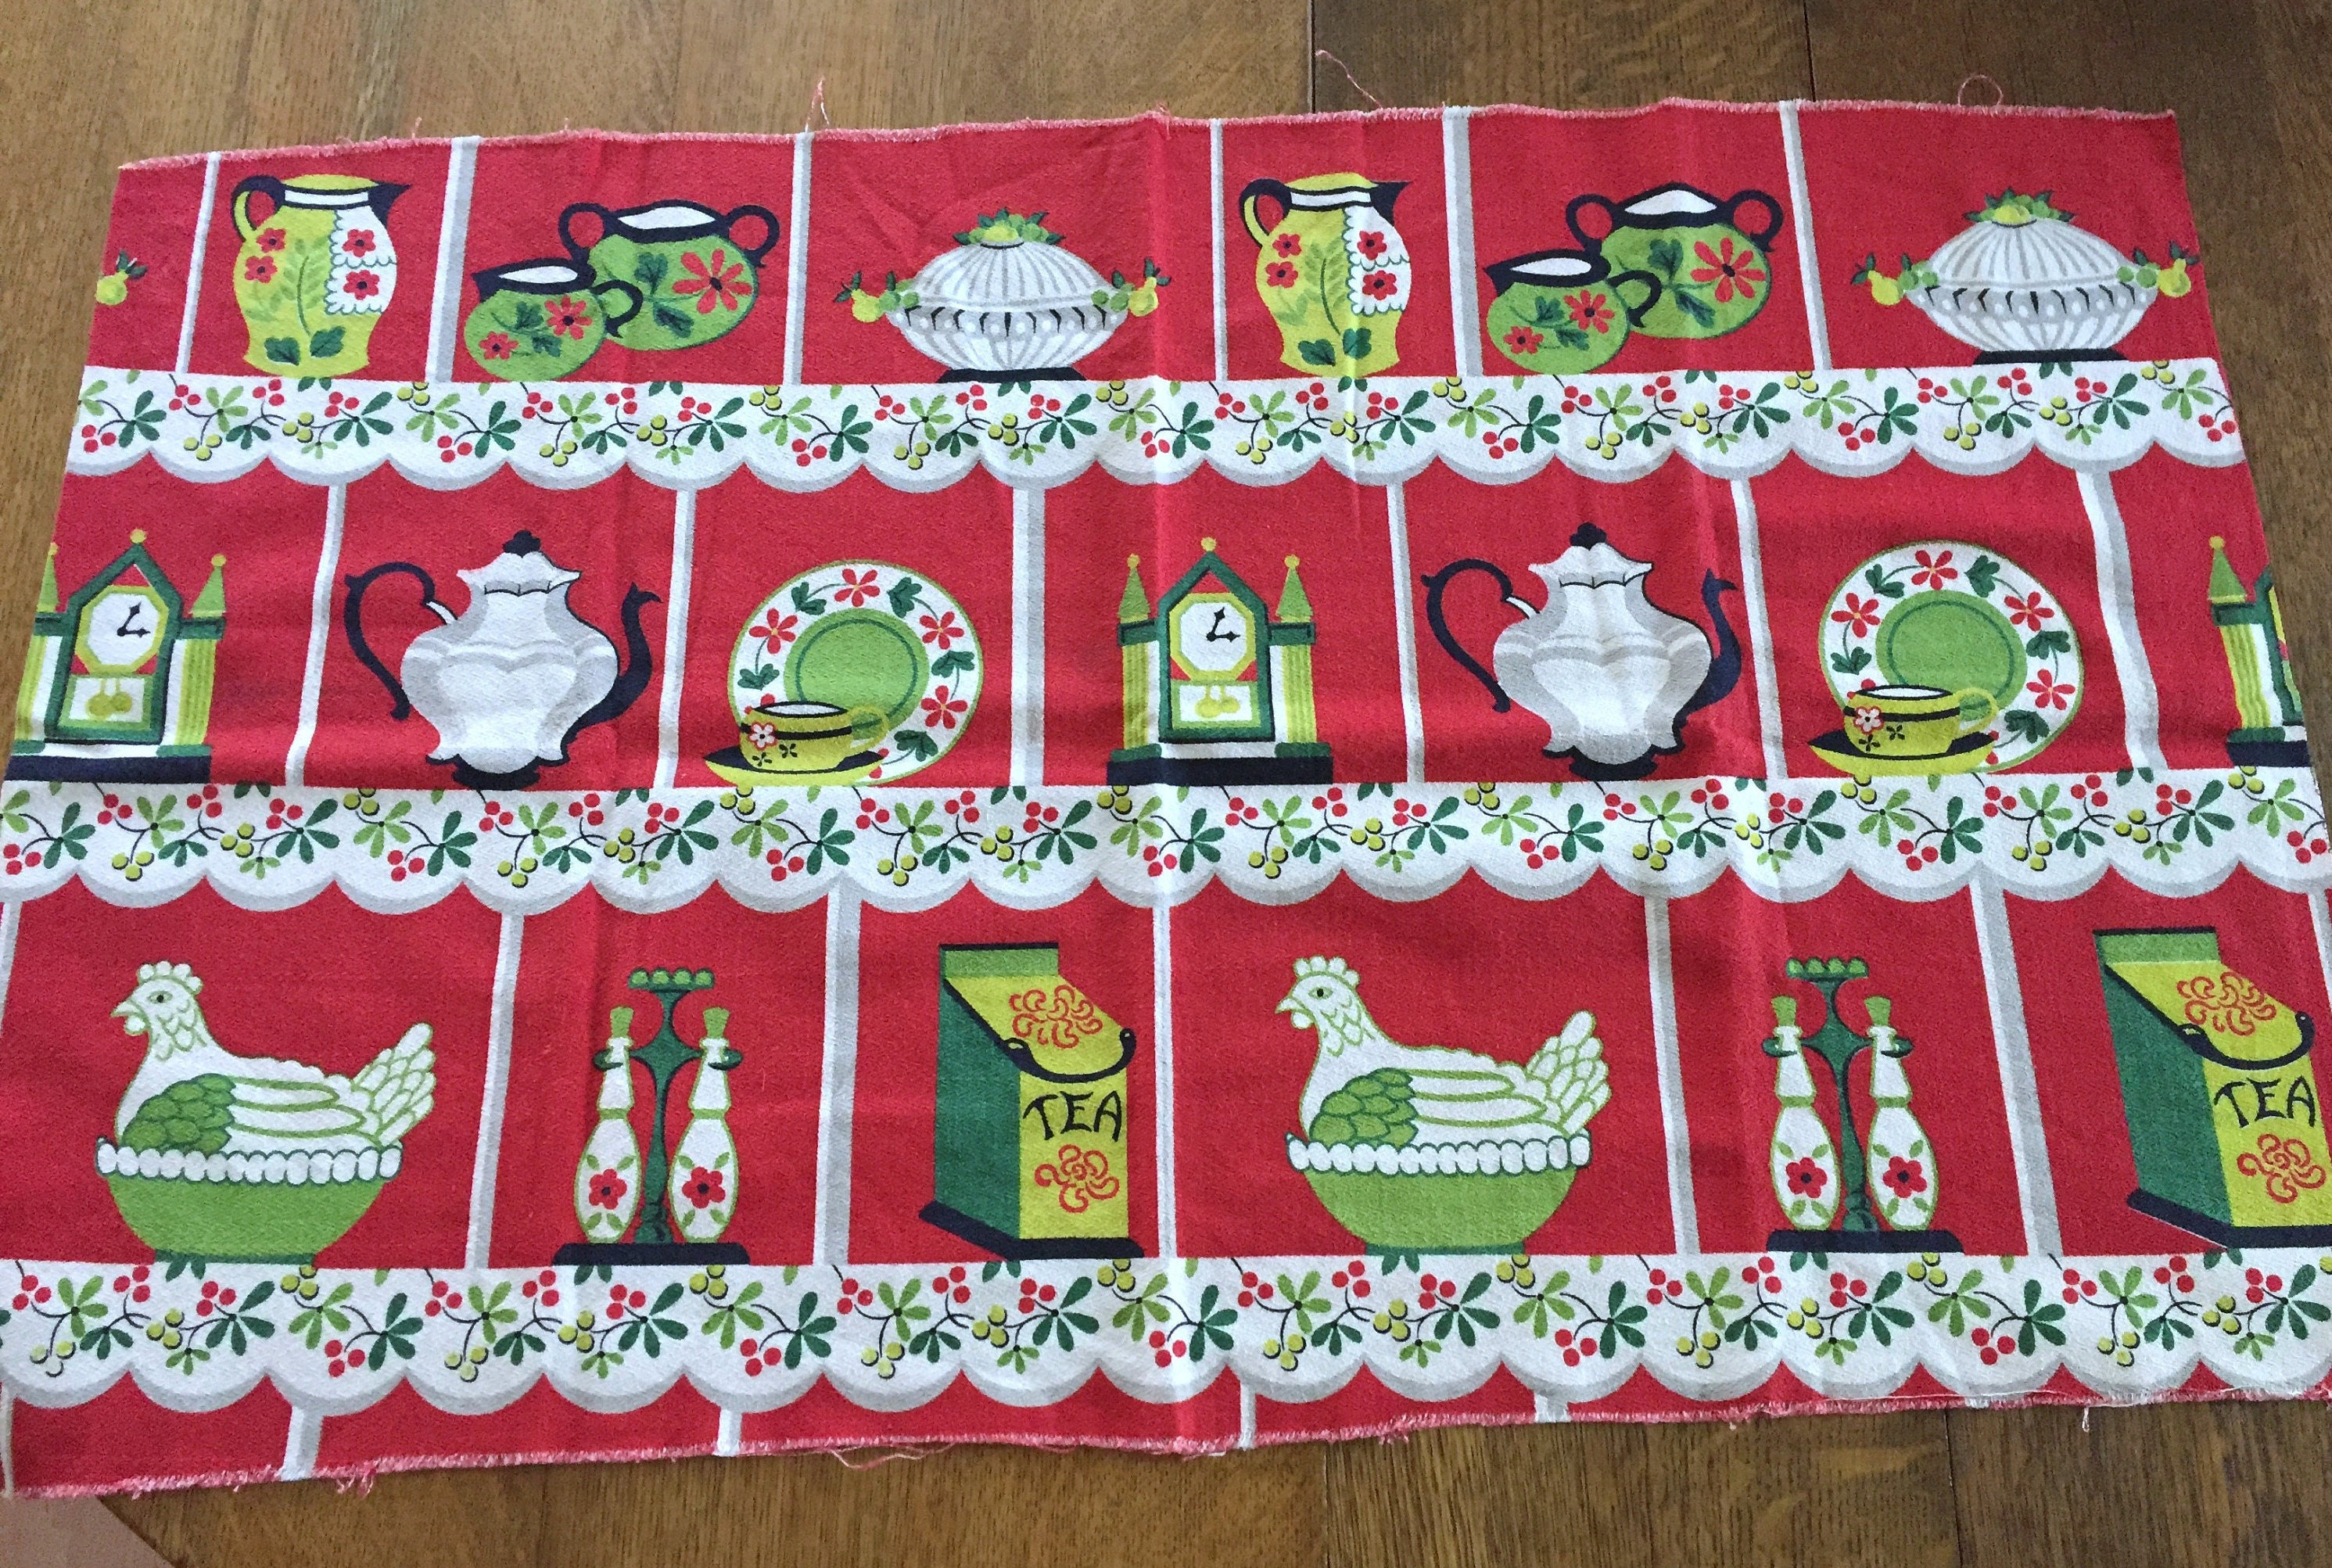 Barkcloth Cotton Fabric Vintage Red Kitchen Bark Cloth